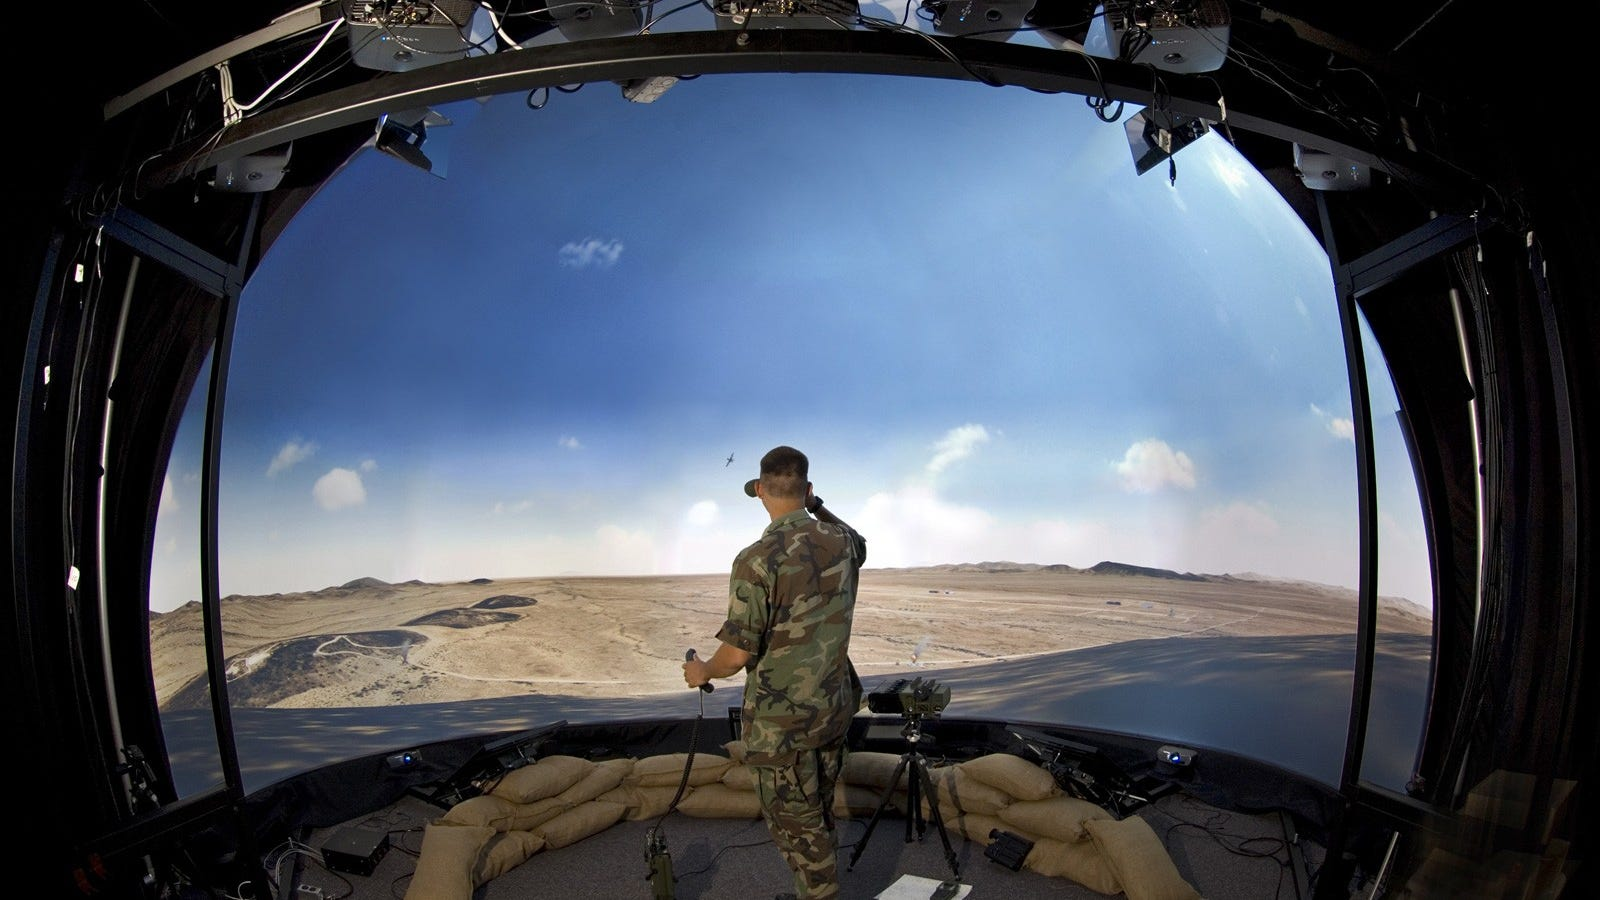 Military VR Simulator Is Closest Thing Ever to Real-Life ... | 1600 x 900 jpeg 172kB